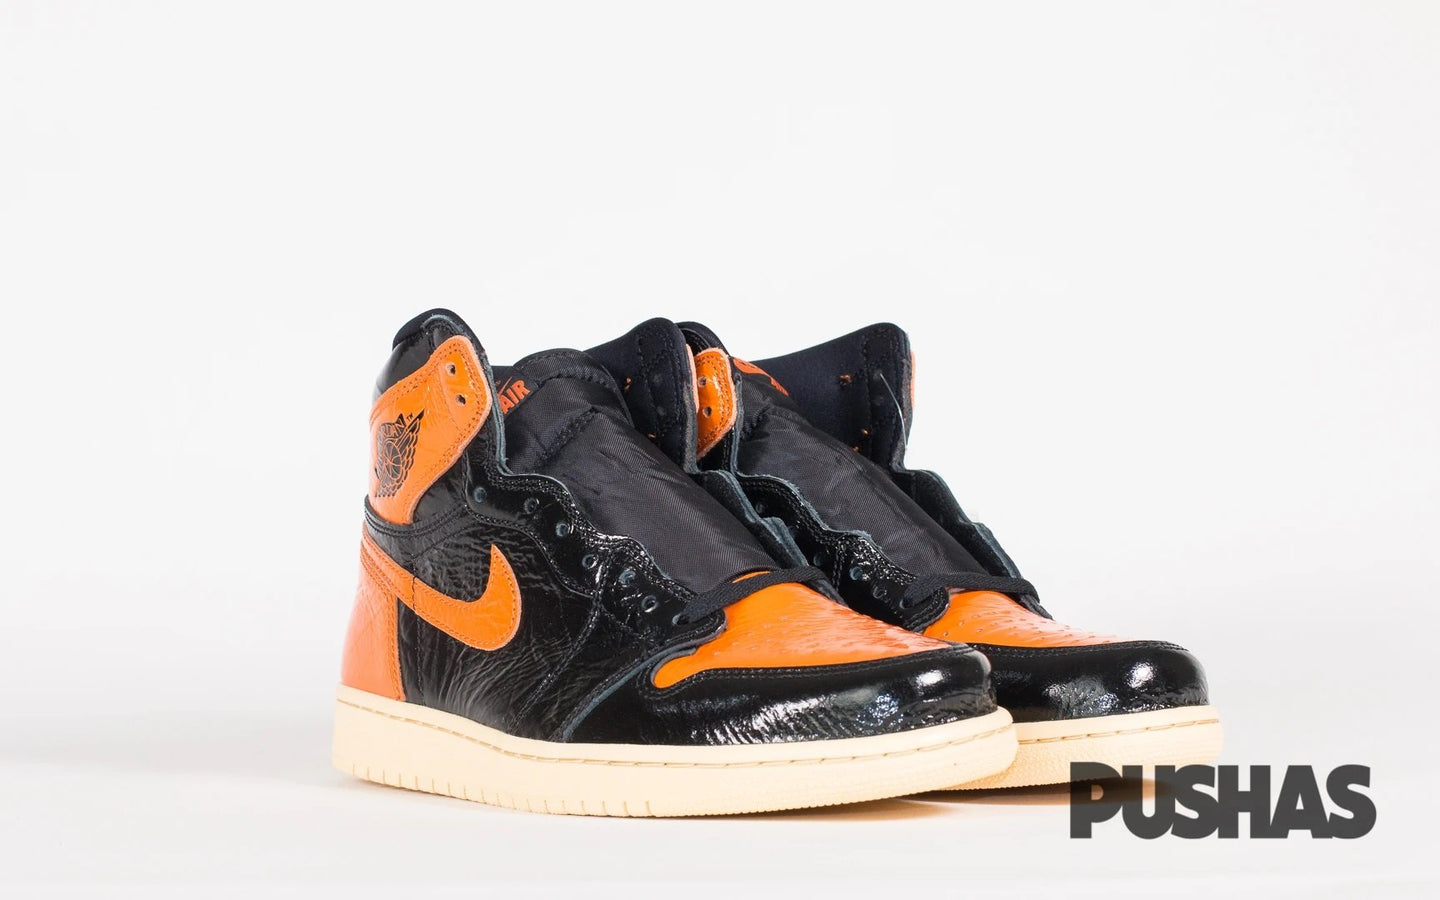 Air Jordan 1 'Shattered Backboard 3.0' GS